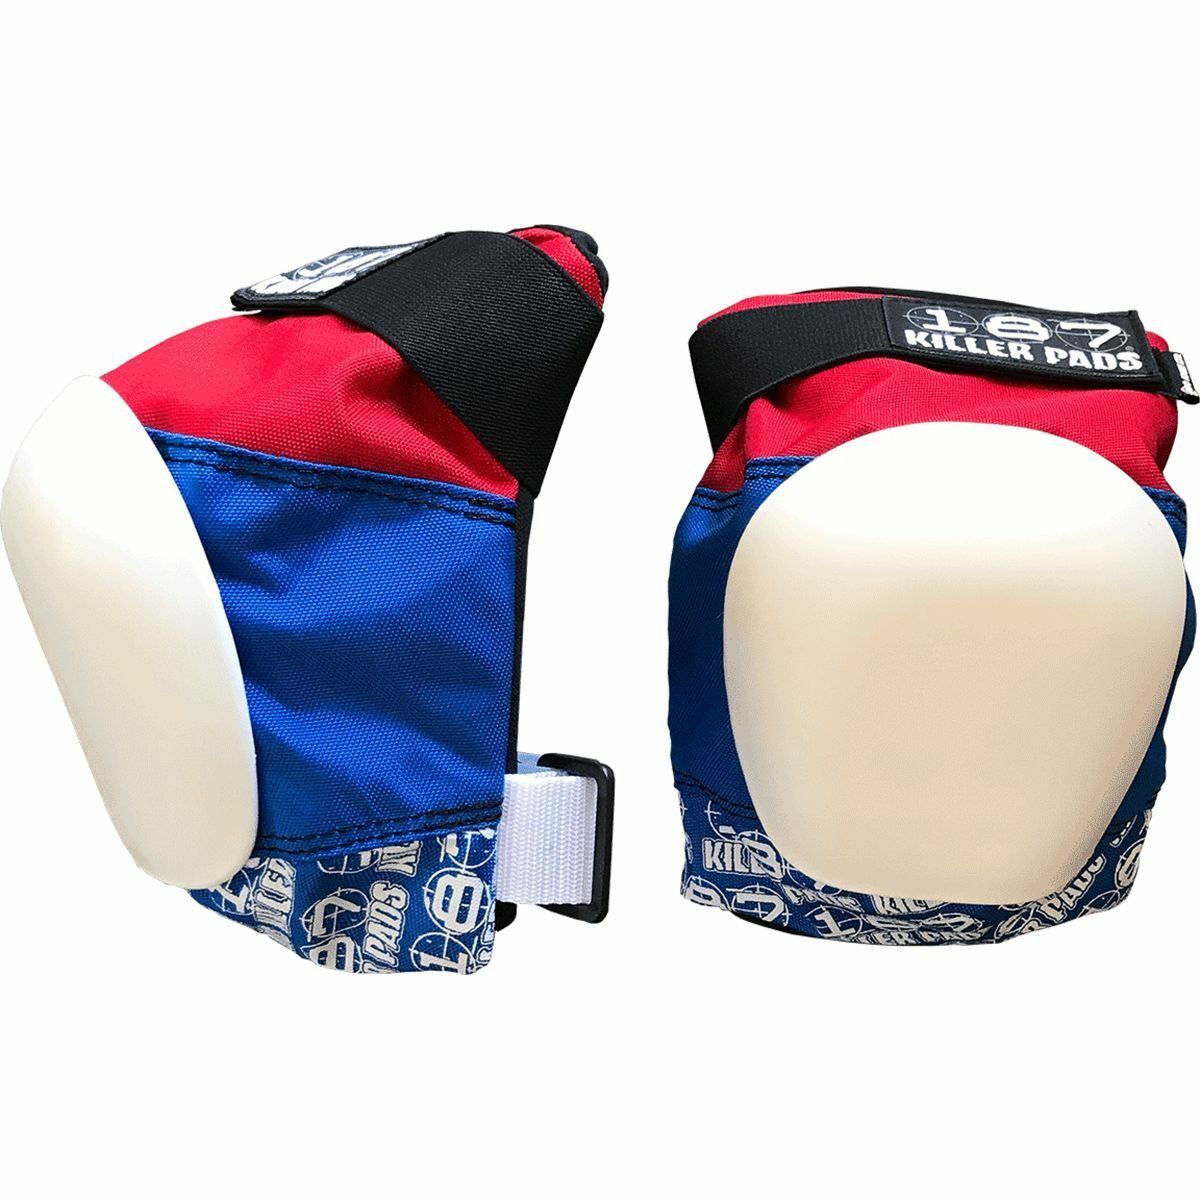 187 Pro Knee Pads Xl-Red White blue